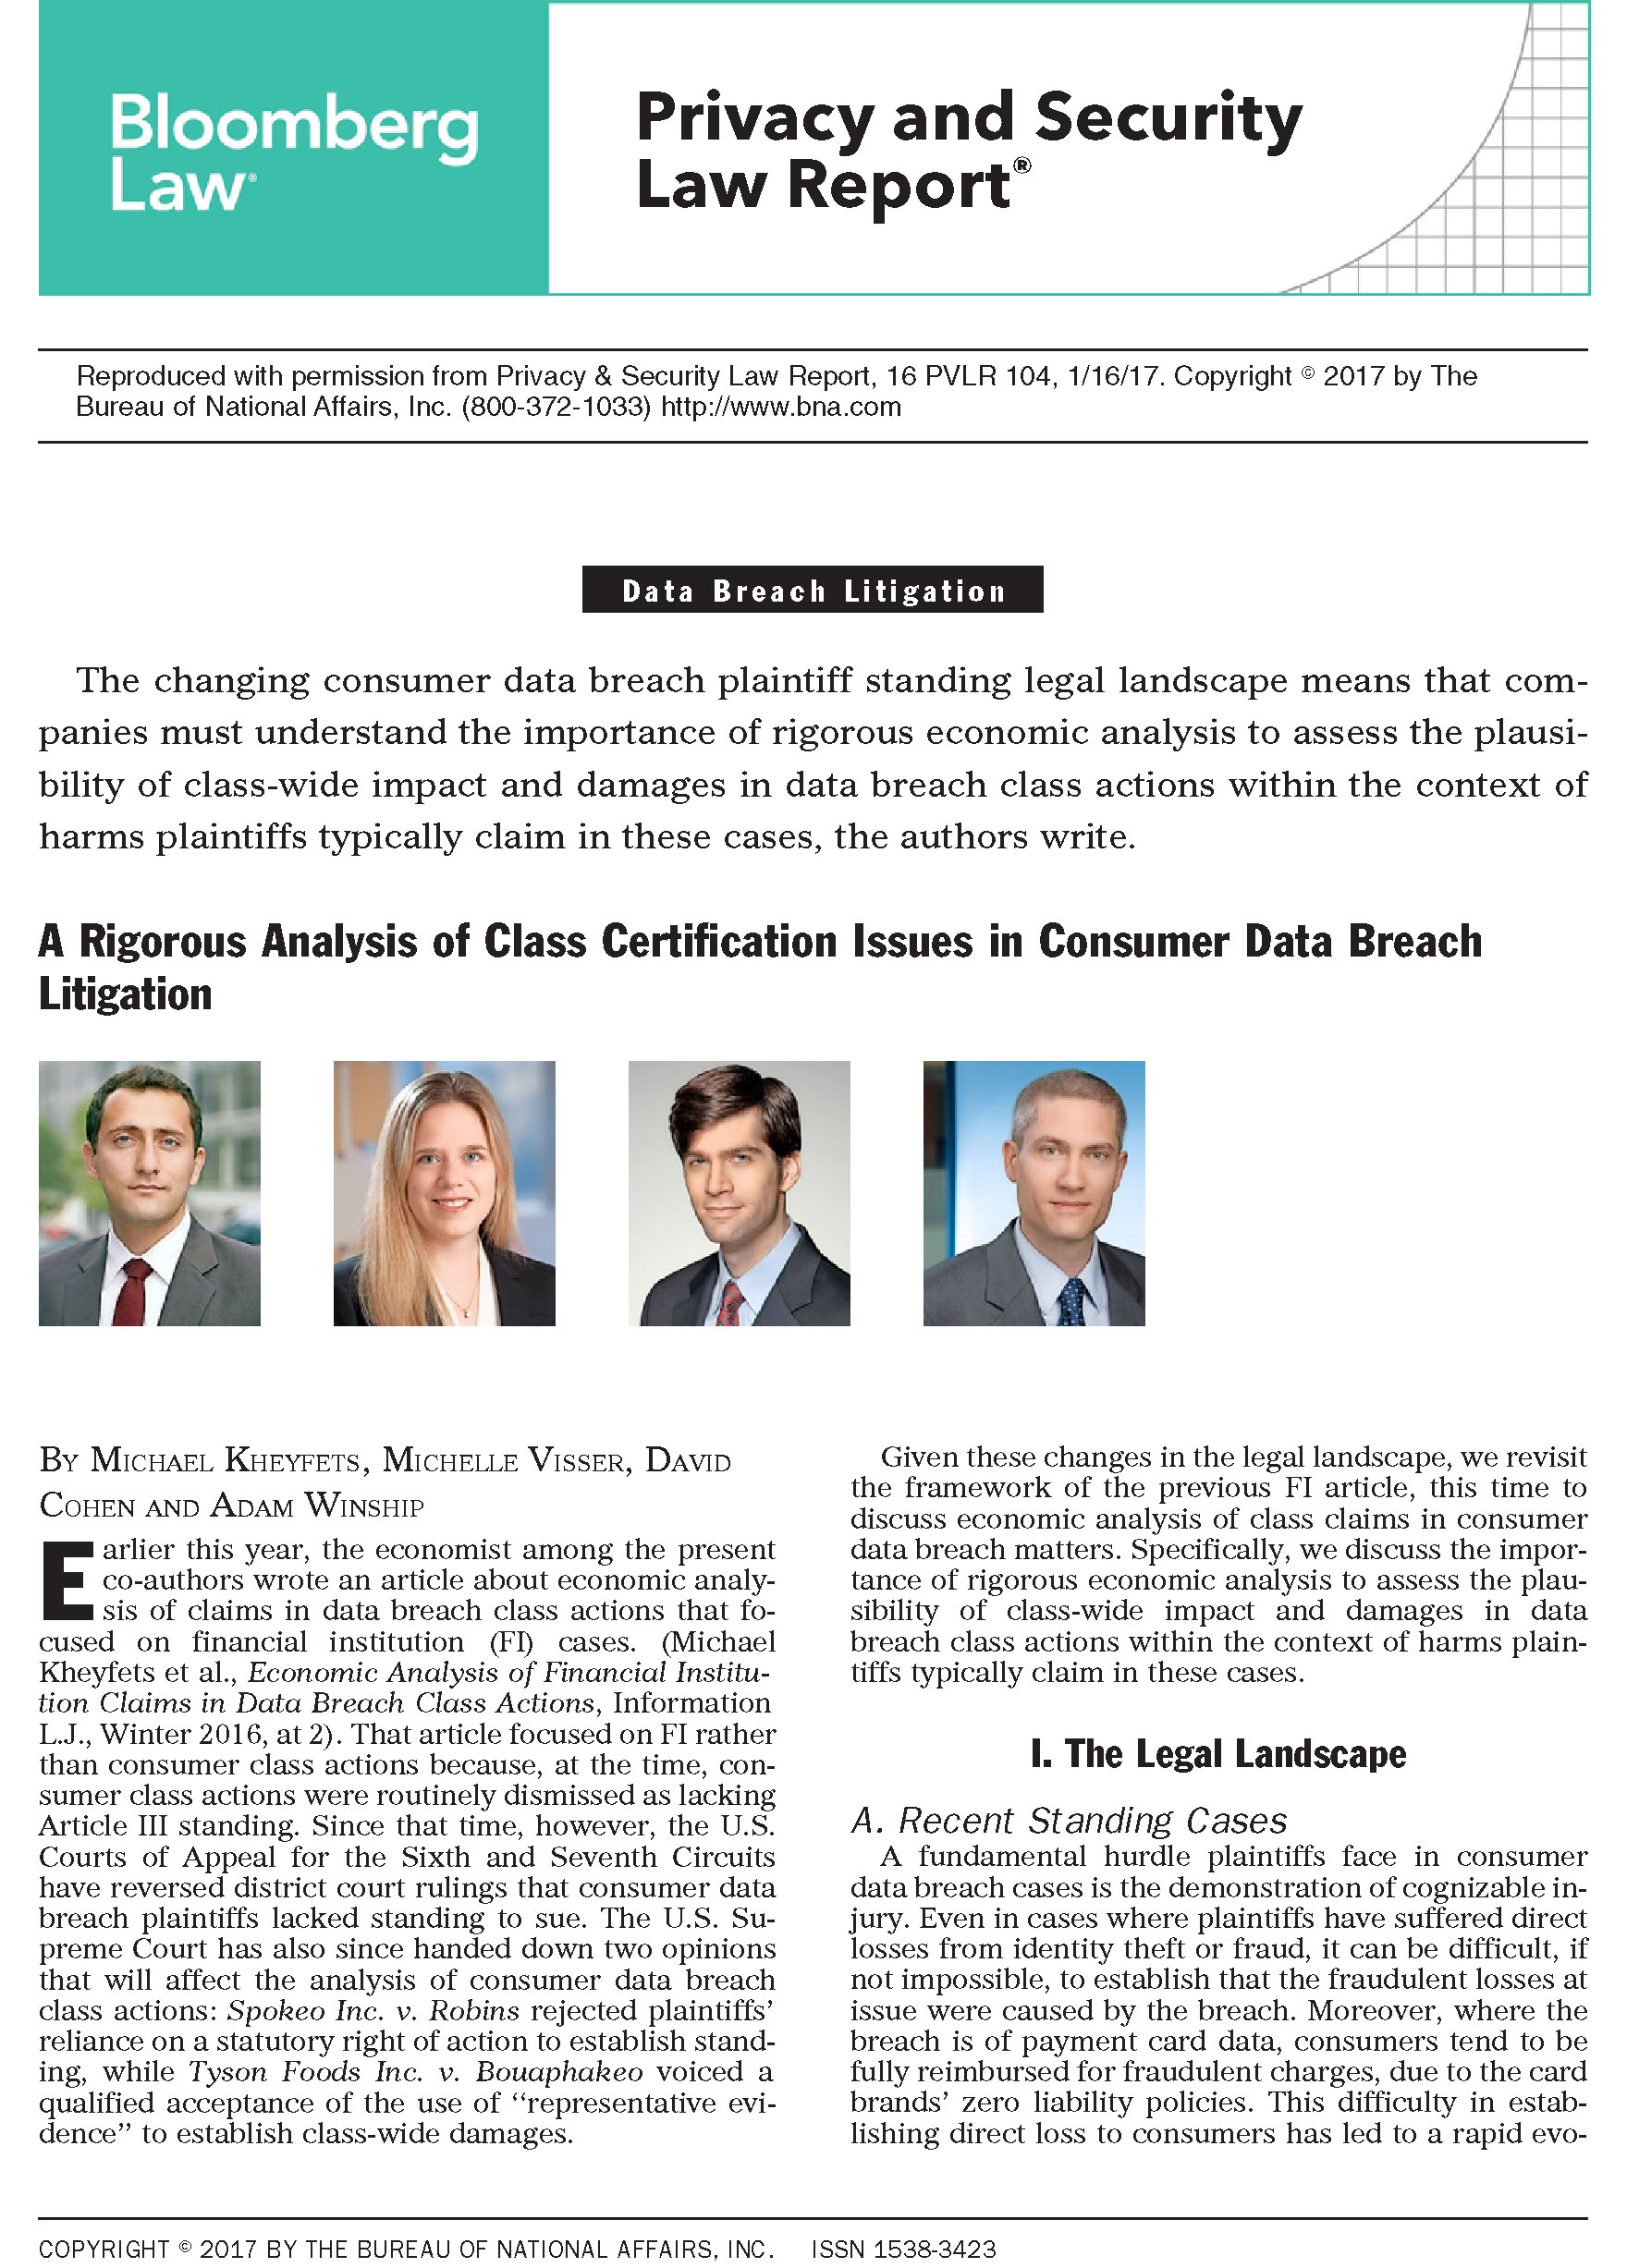 A Rigorous Analysis Of Class Certification Issues In Consumer Data